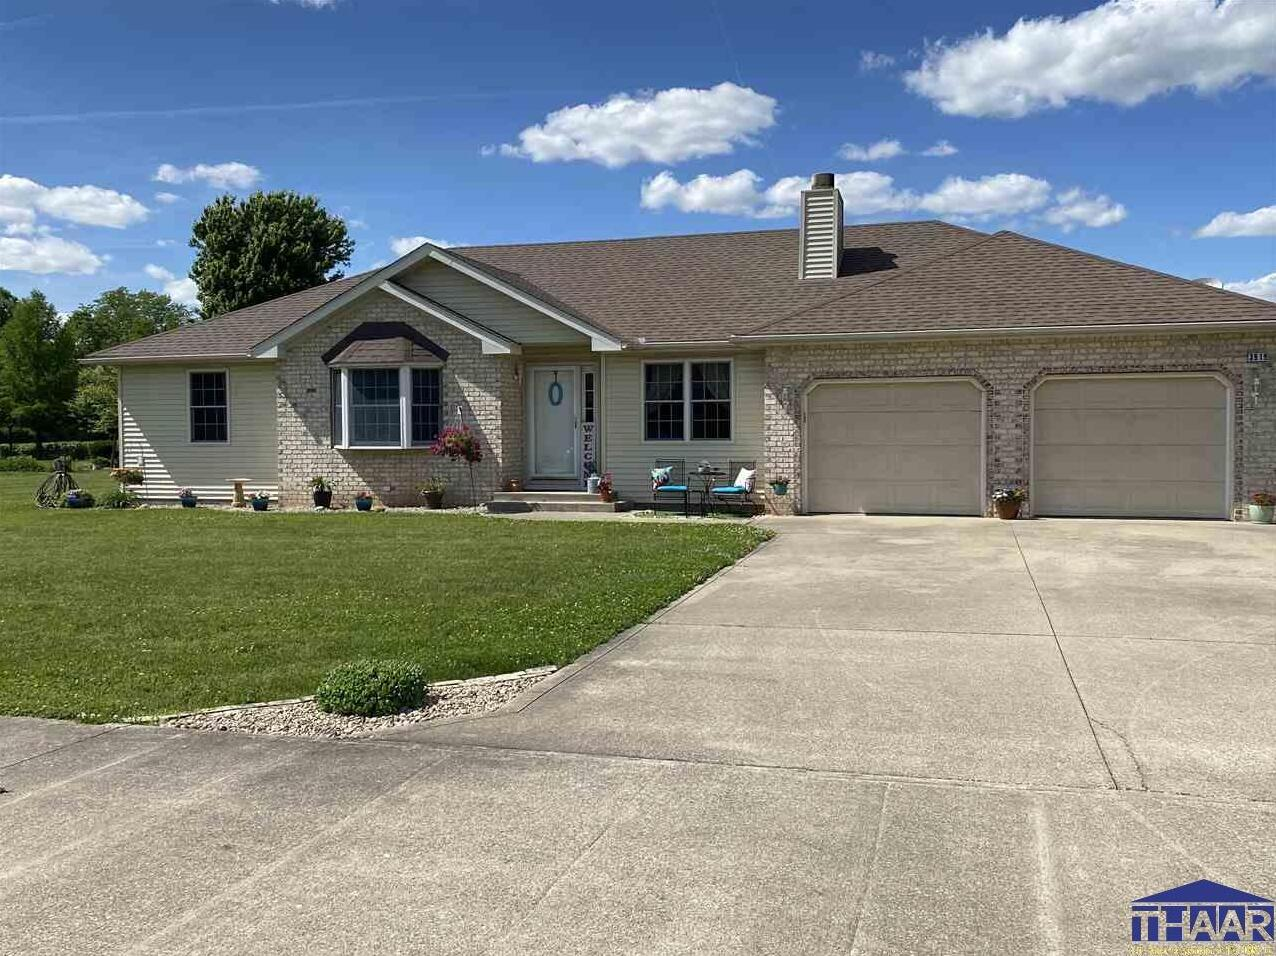 Photo of 3919 Wahachee Drive Terre Haute IN 47802